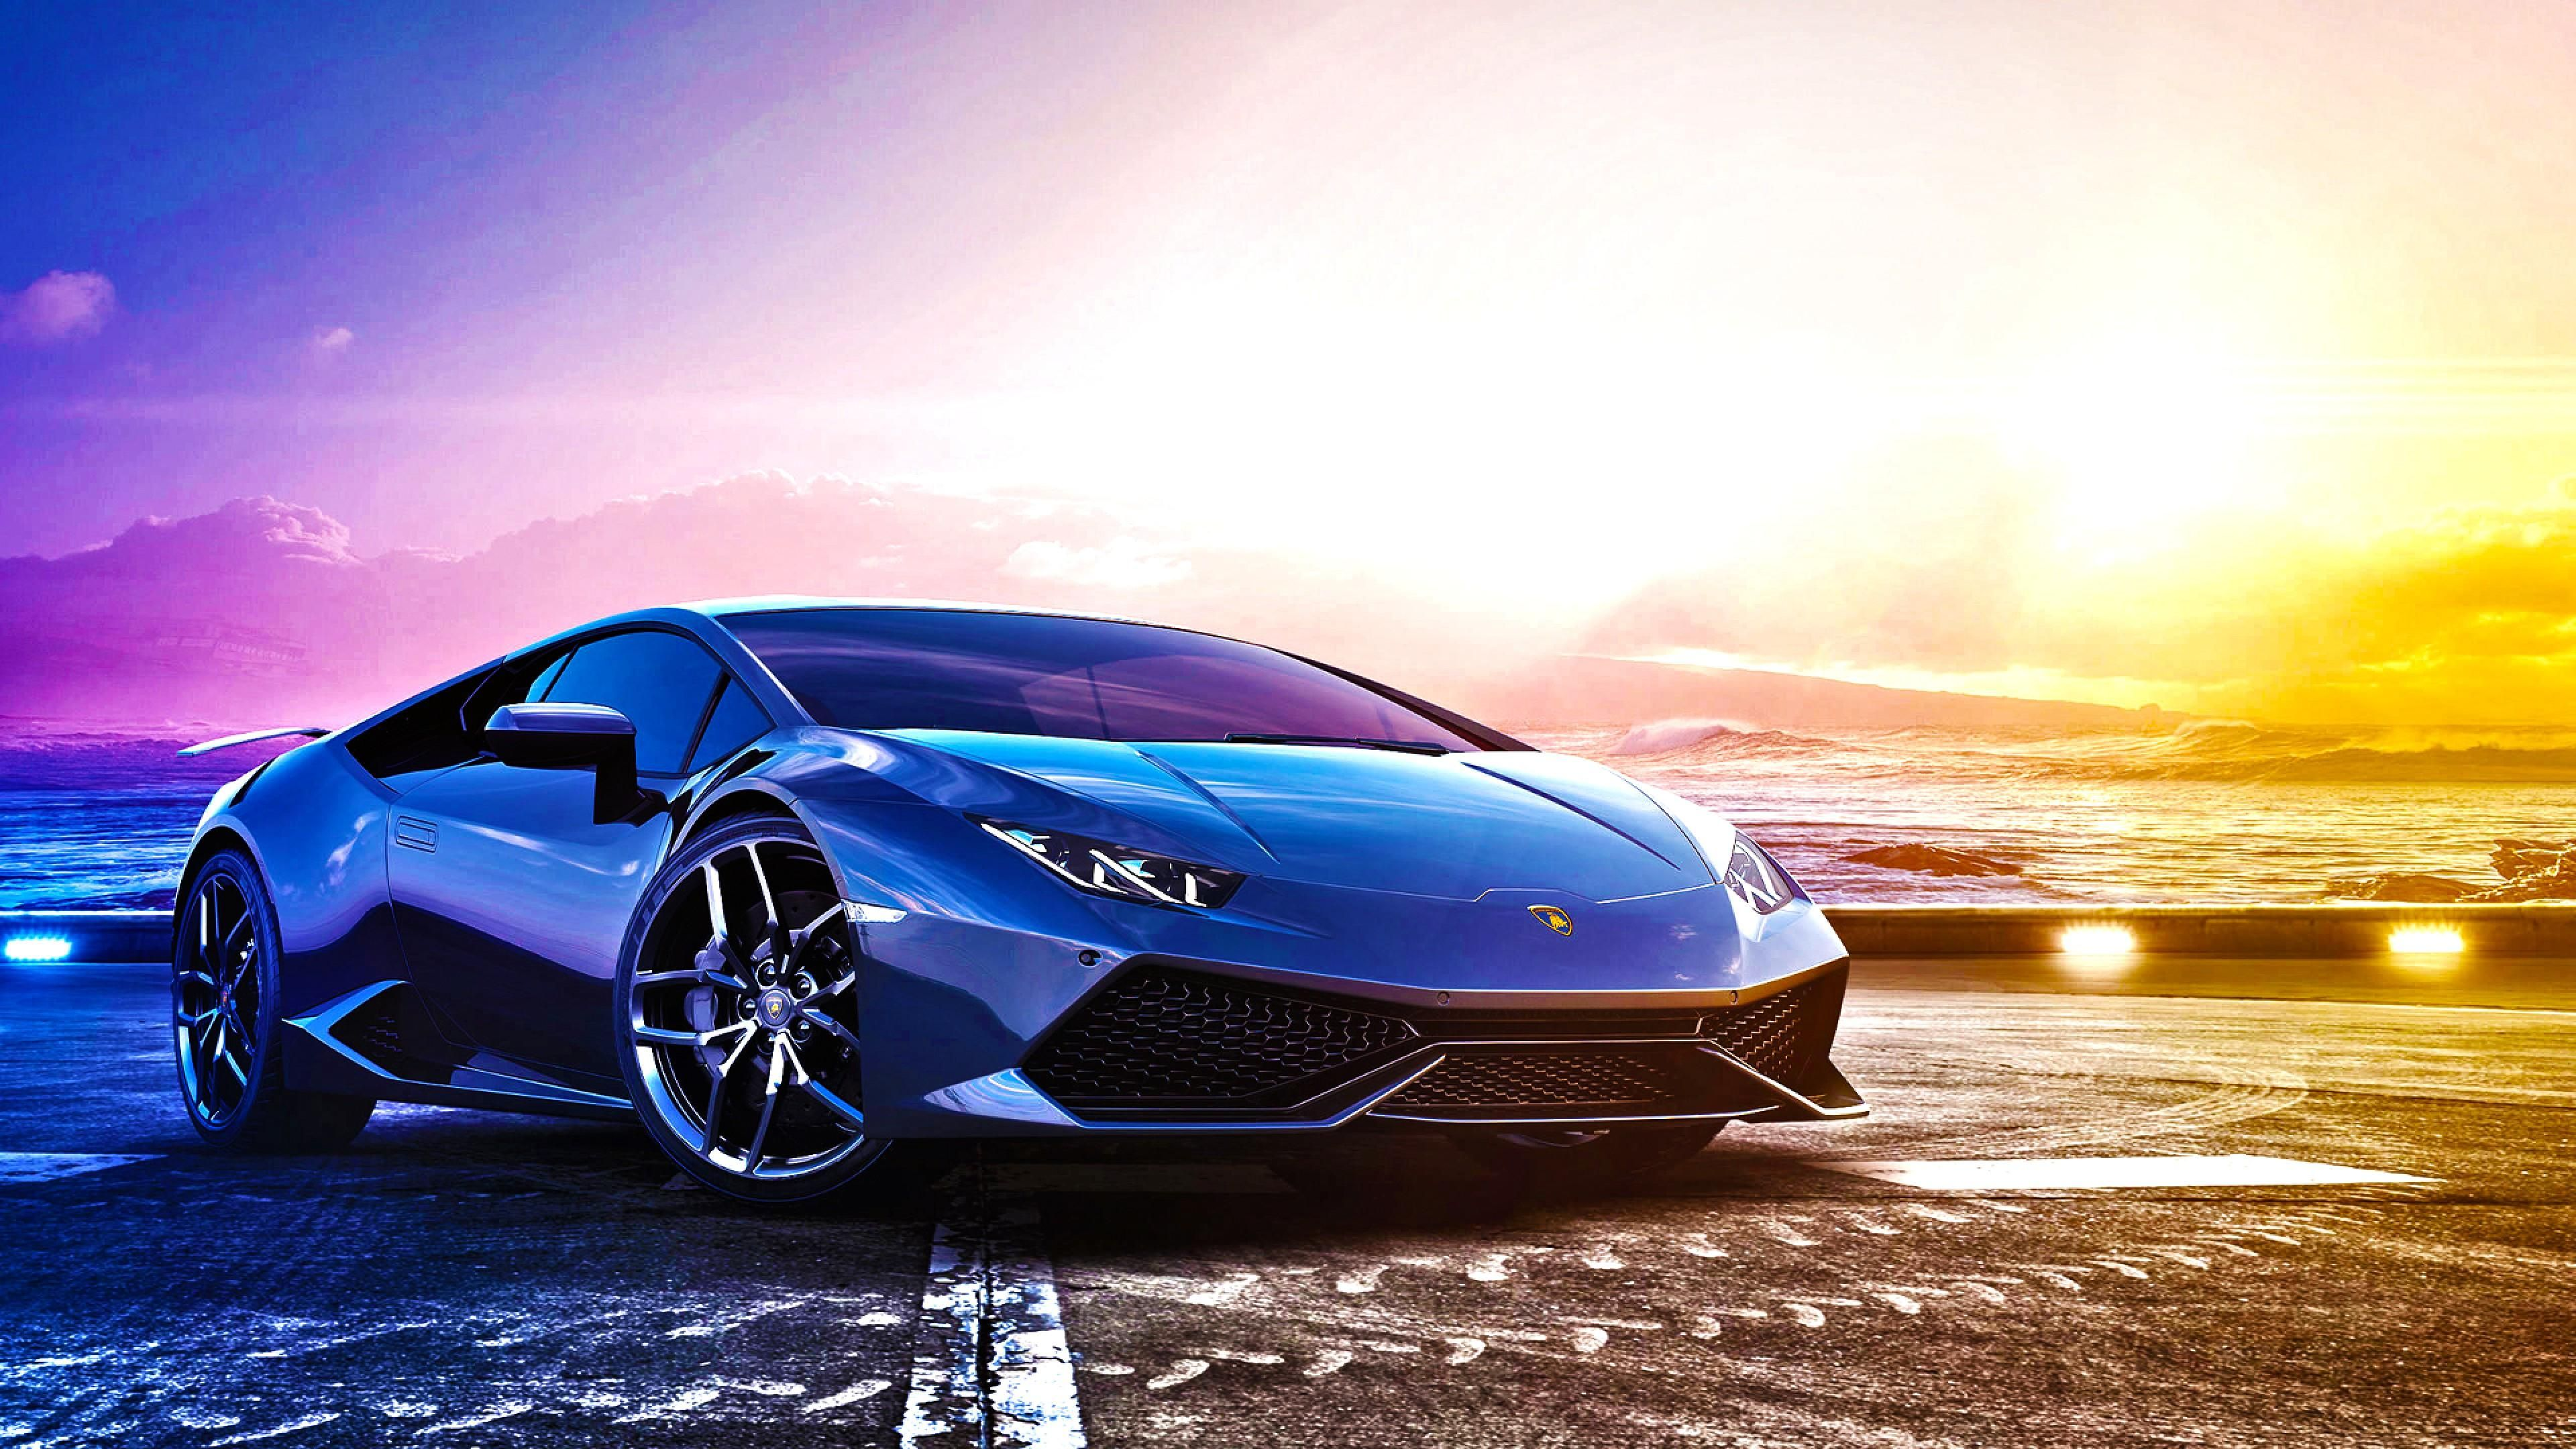 Blue Lamborghini Aventador 4k Wallpaper Lamborghini Wallpapers Lamborghini Aventador Wallpaper Car Wallpapers Blue Lamborghini Lamborghini Aventador Wallpaper